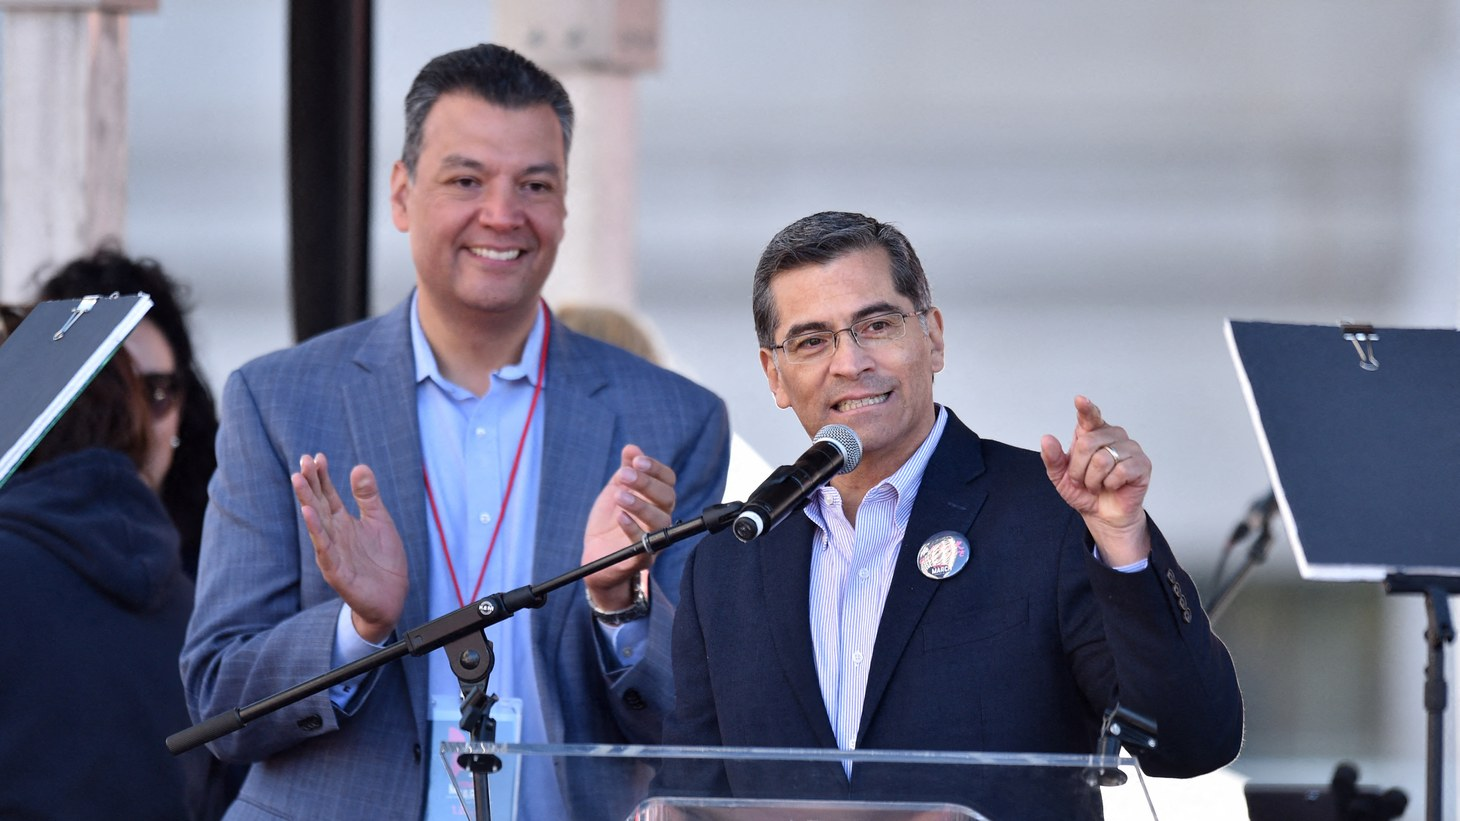 California Attorney General Xavier Becerra speaks during the 2018 Women's March in Los Angeles, CA, USA. President-elect Joe Biden has selected Becerra to serve as his Secretary of Health and Human Services who will help oversee the government's response to the coronavirus pandemic.